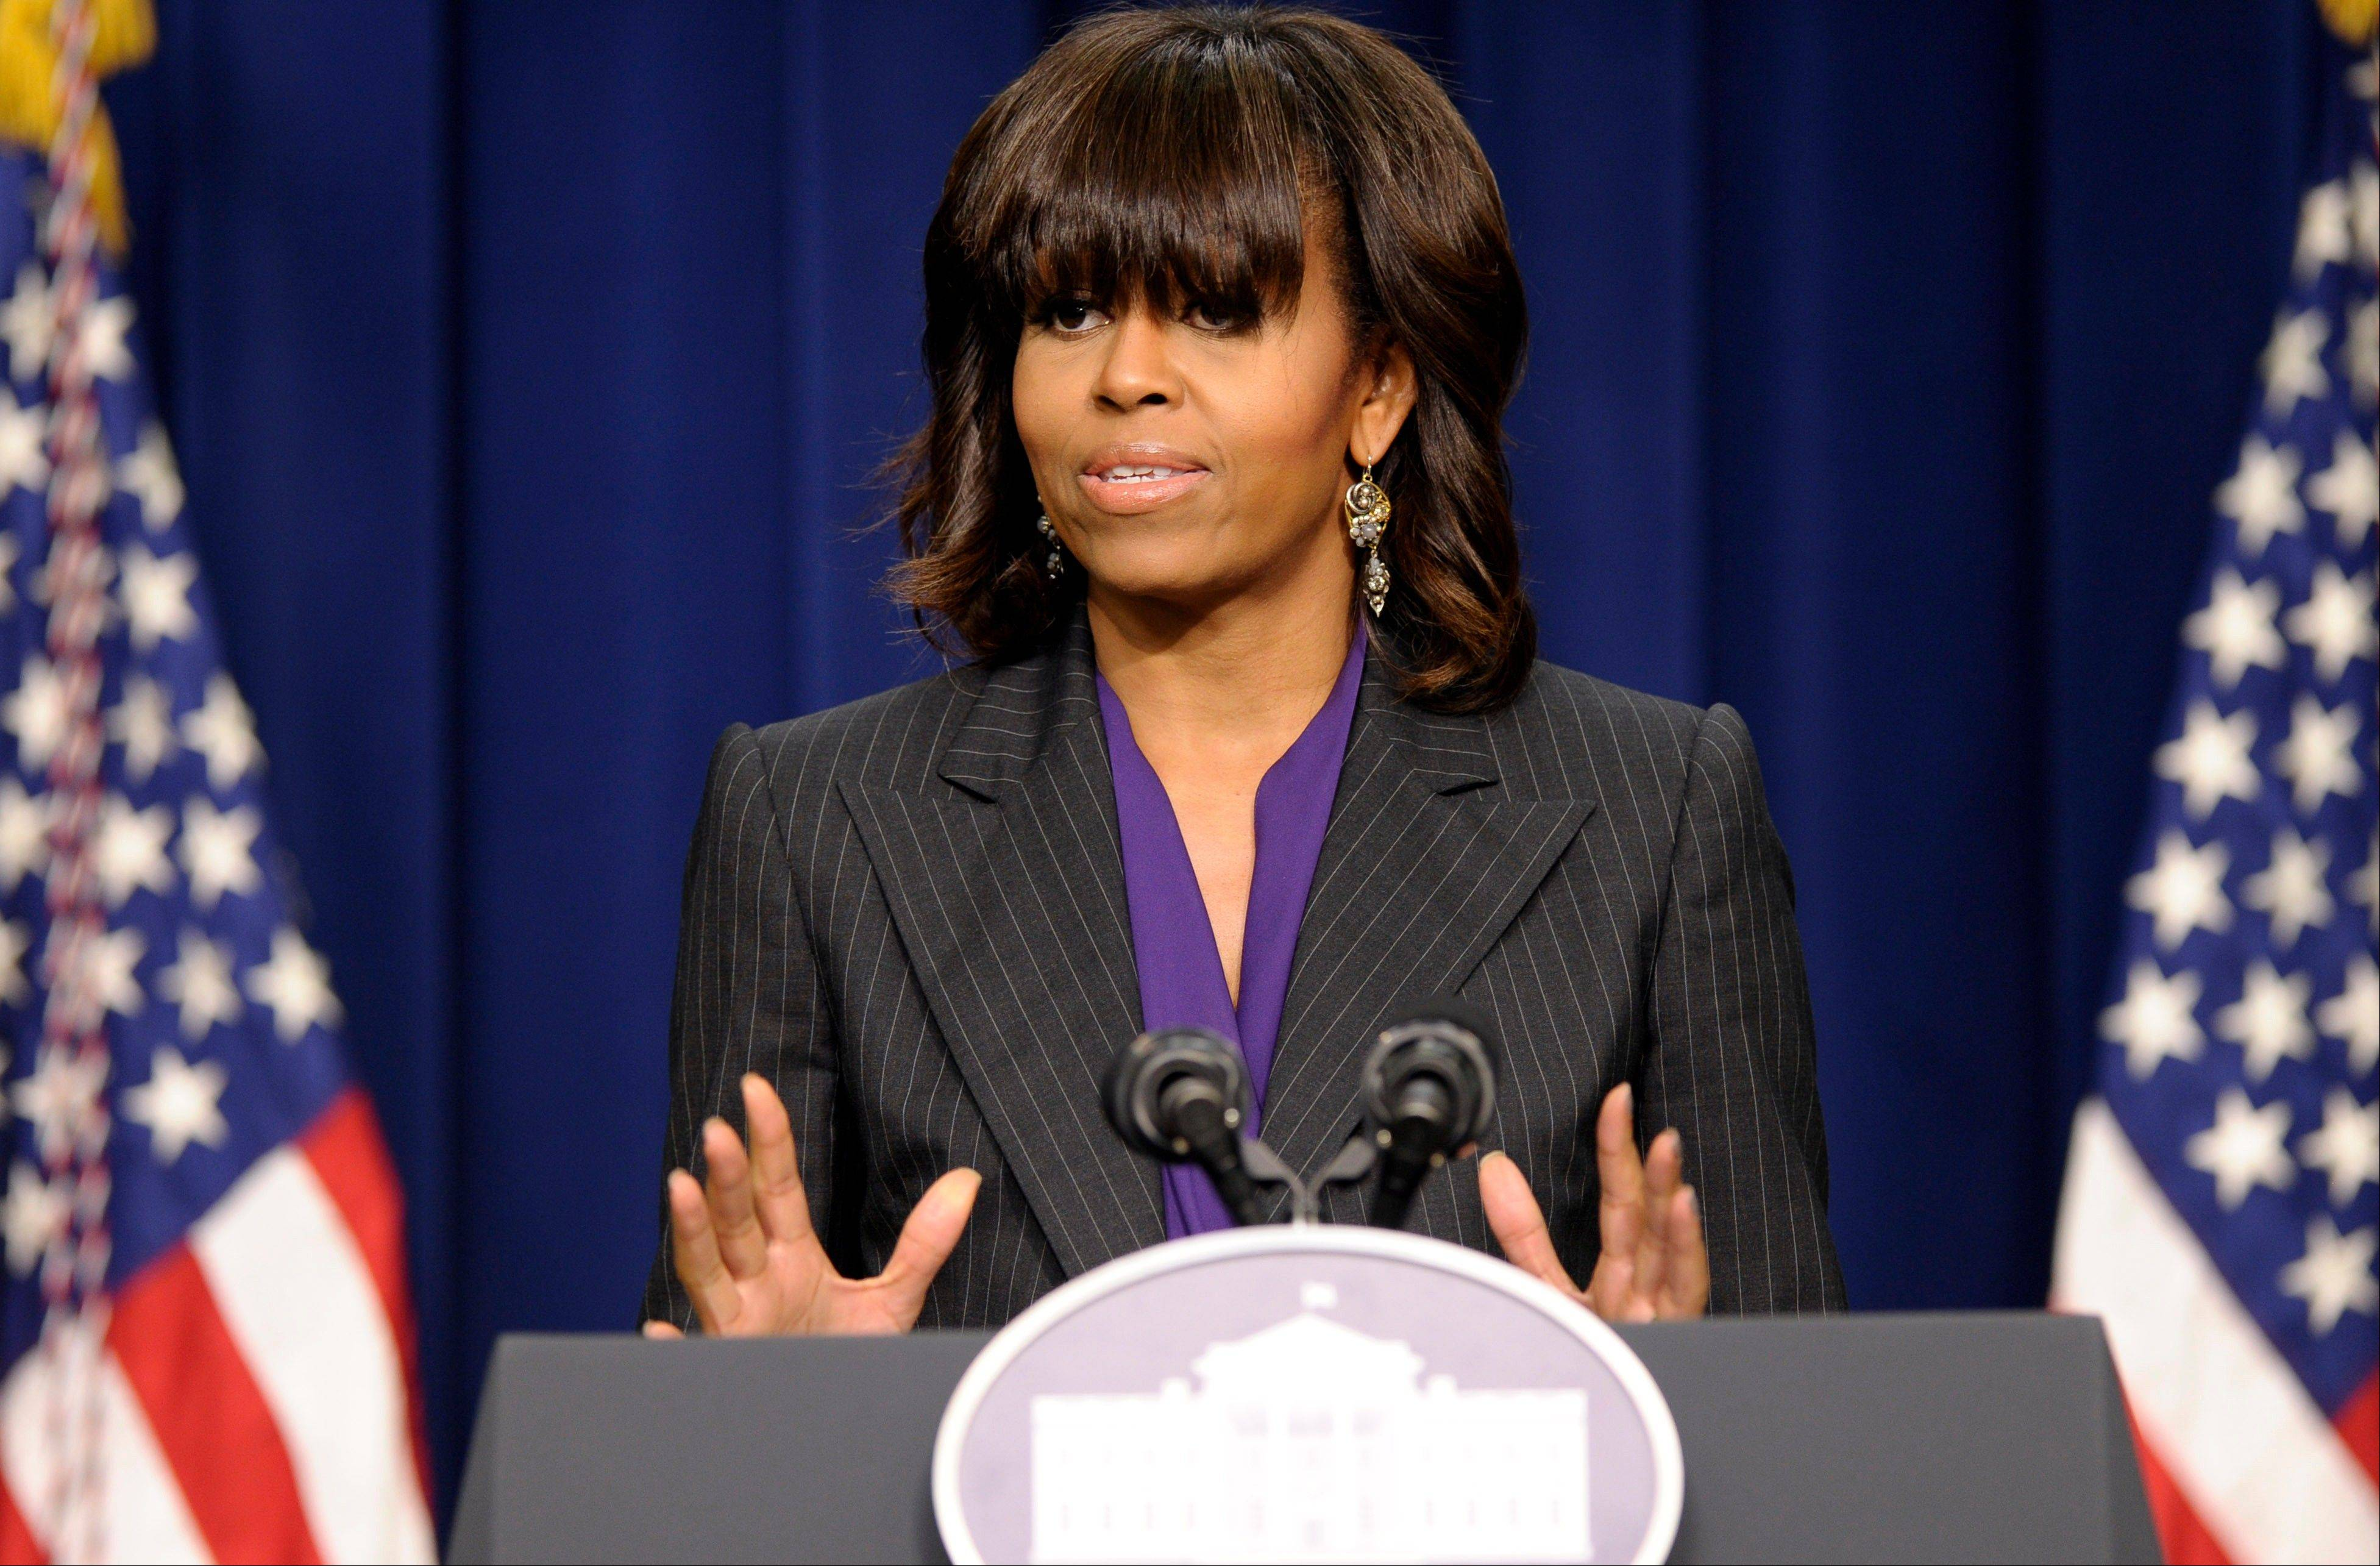 First lady Michelle Obama will present an award to the Waukegan Public Library on Wednesday at the White House.